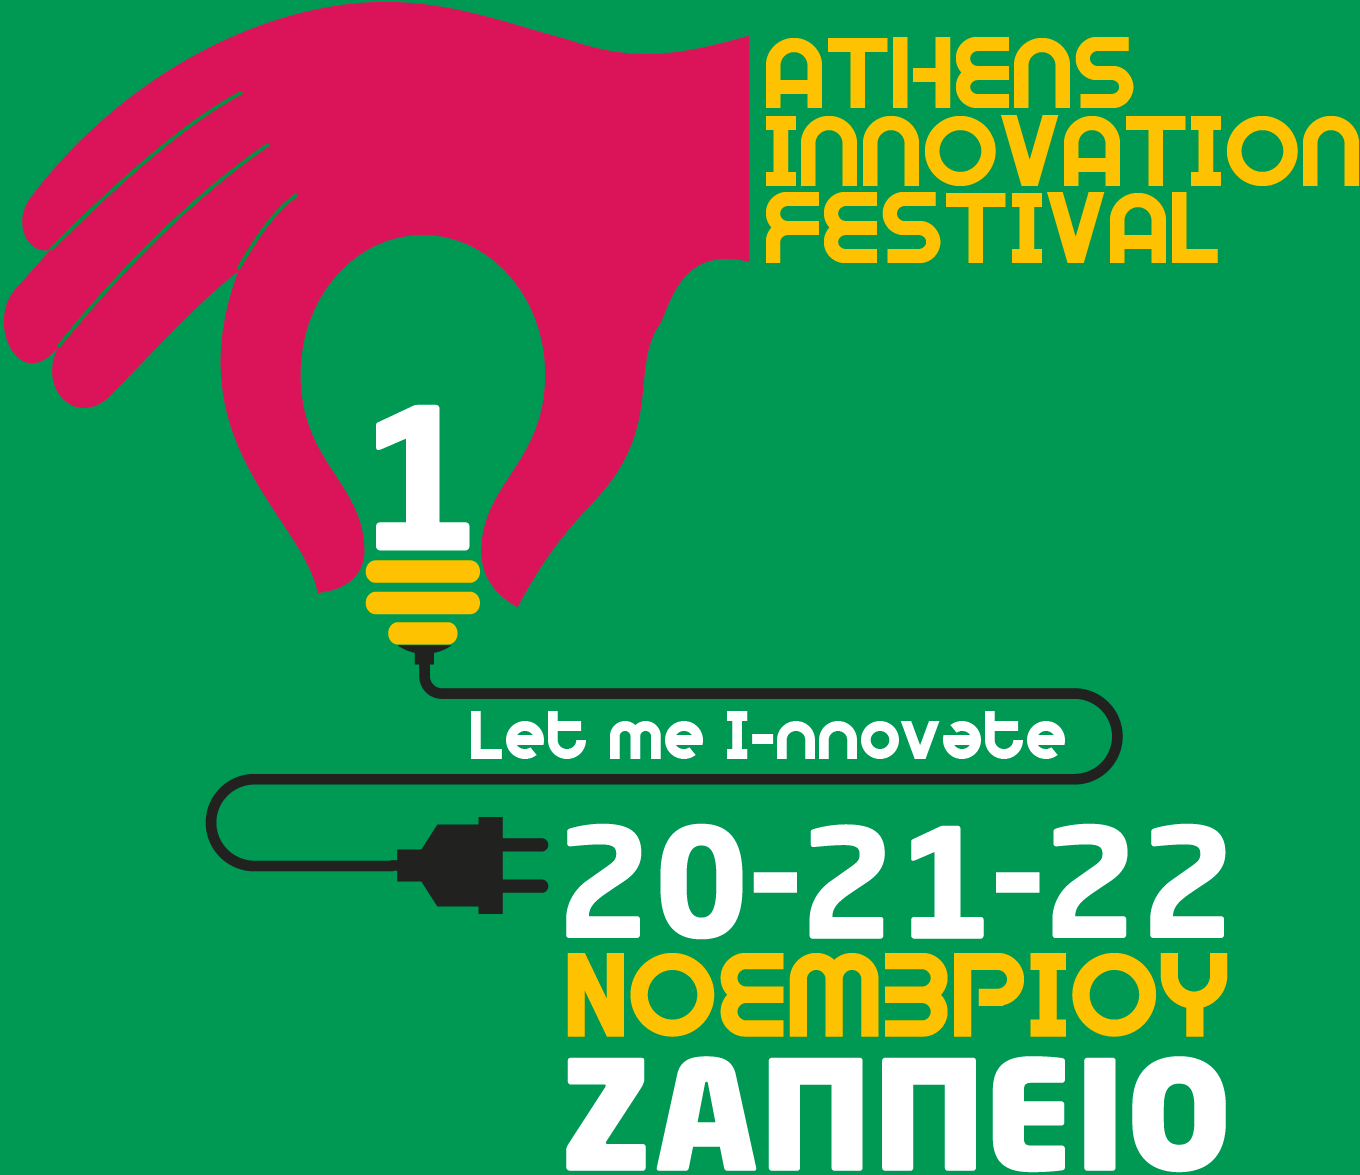 athnes innovation festival poster